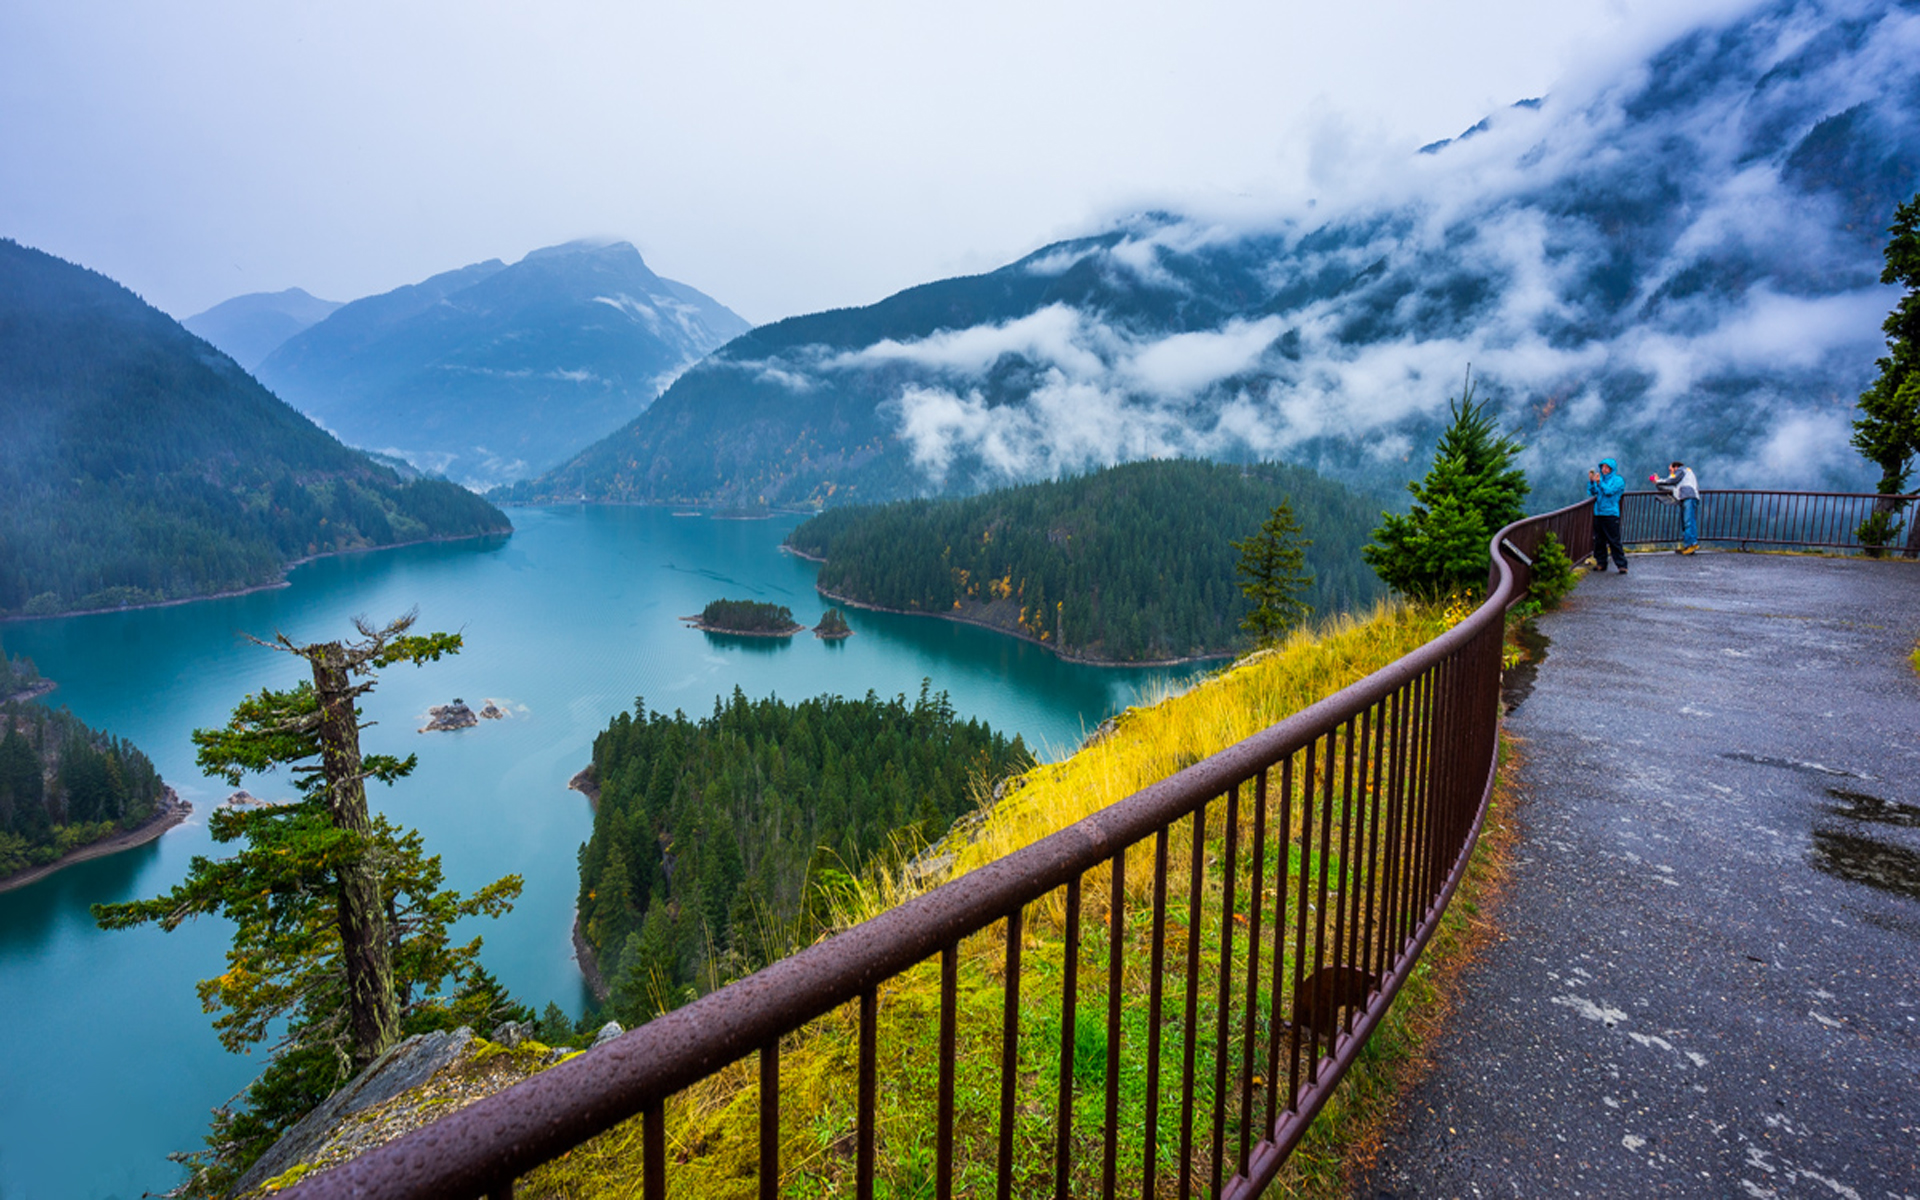 Wallpaper For Phones Fall Autumn Landscape Diablo Lake Overlook North Cascades